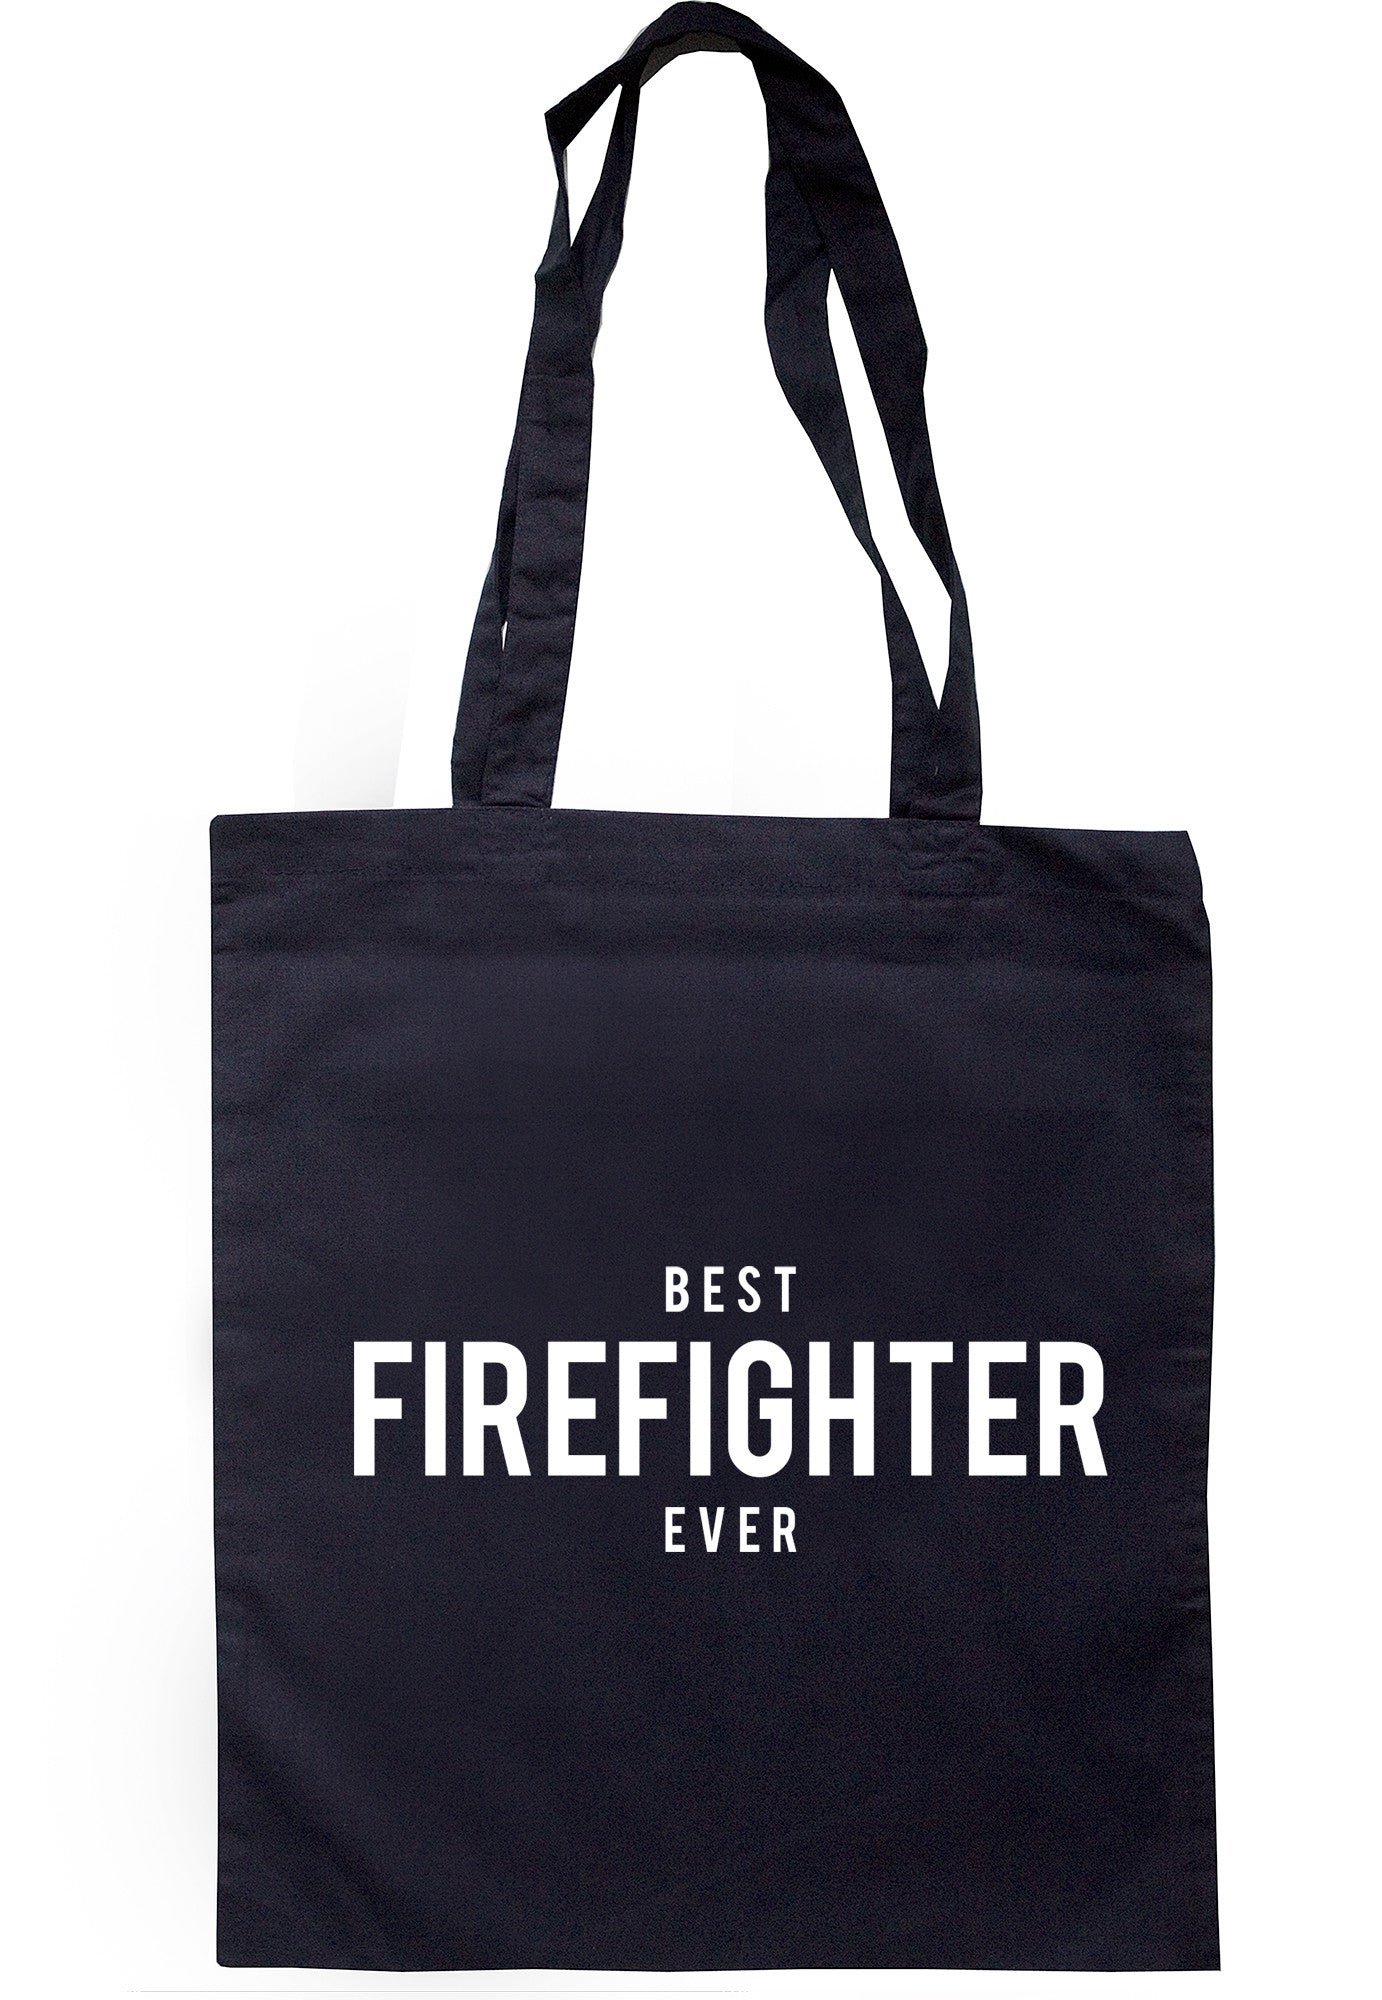 Best Firefighter Ever Tote Bag TB1297